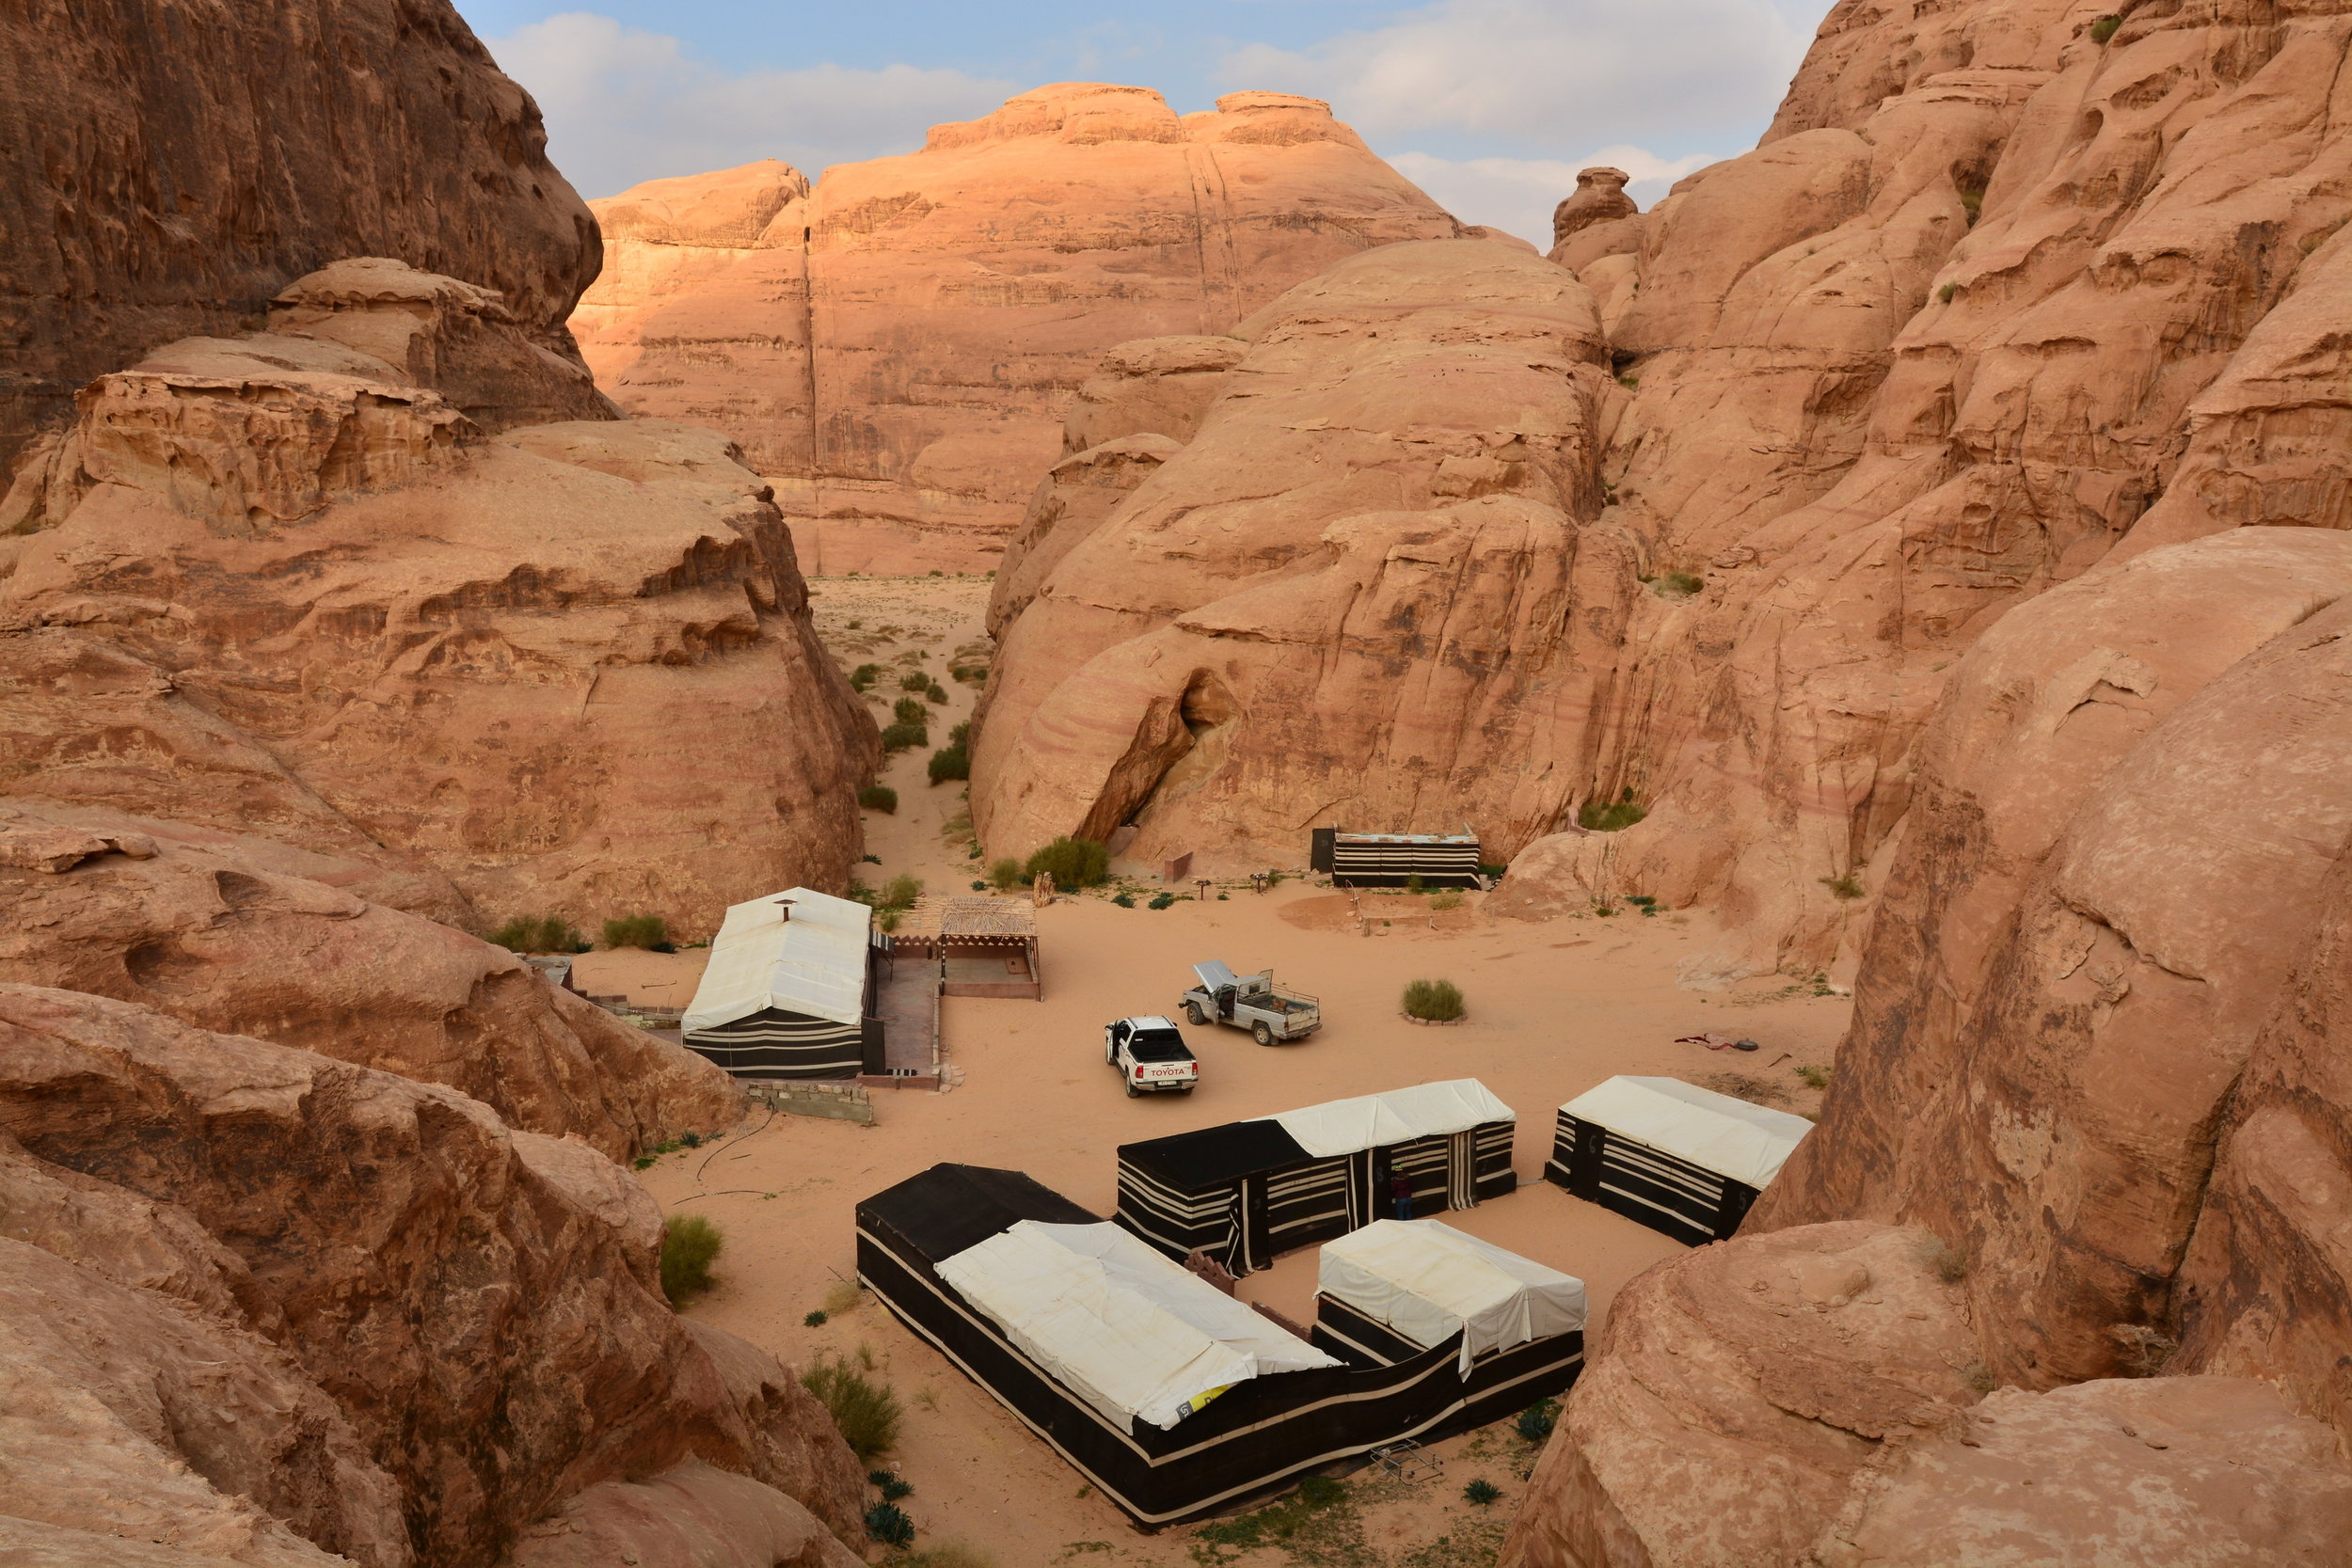 Hasil gambar untuk What do you now about the classic Bedouin Camp